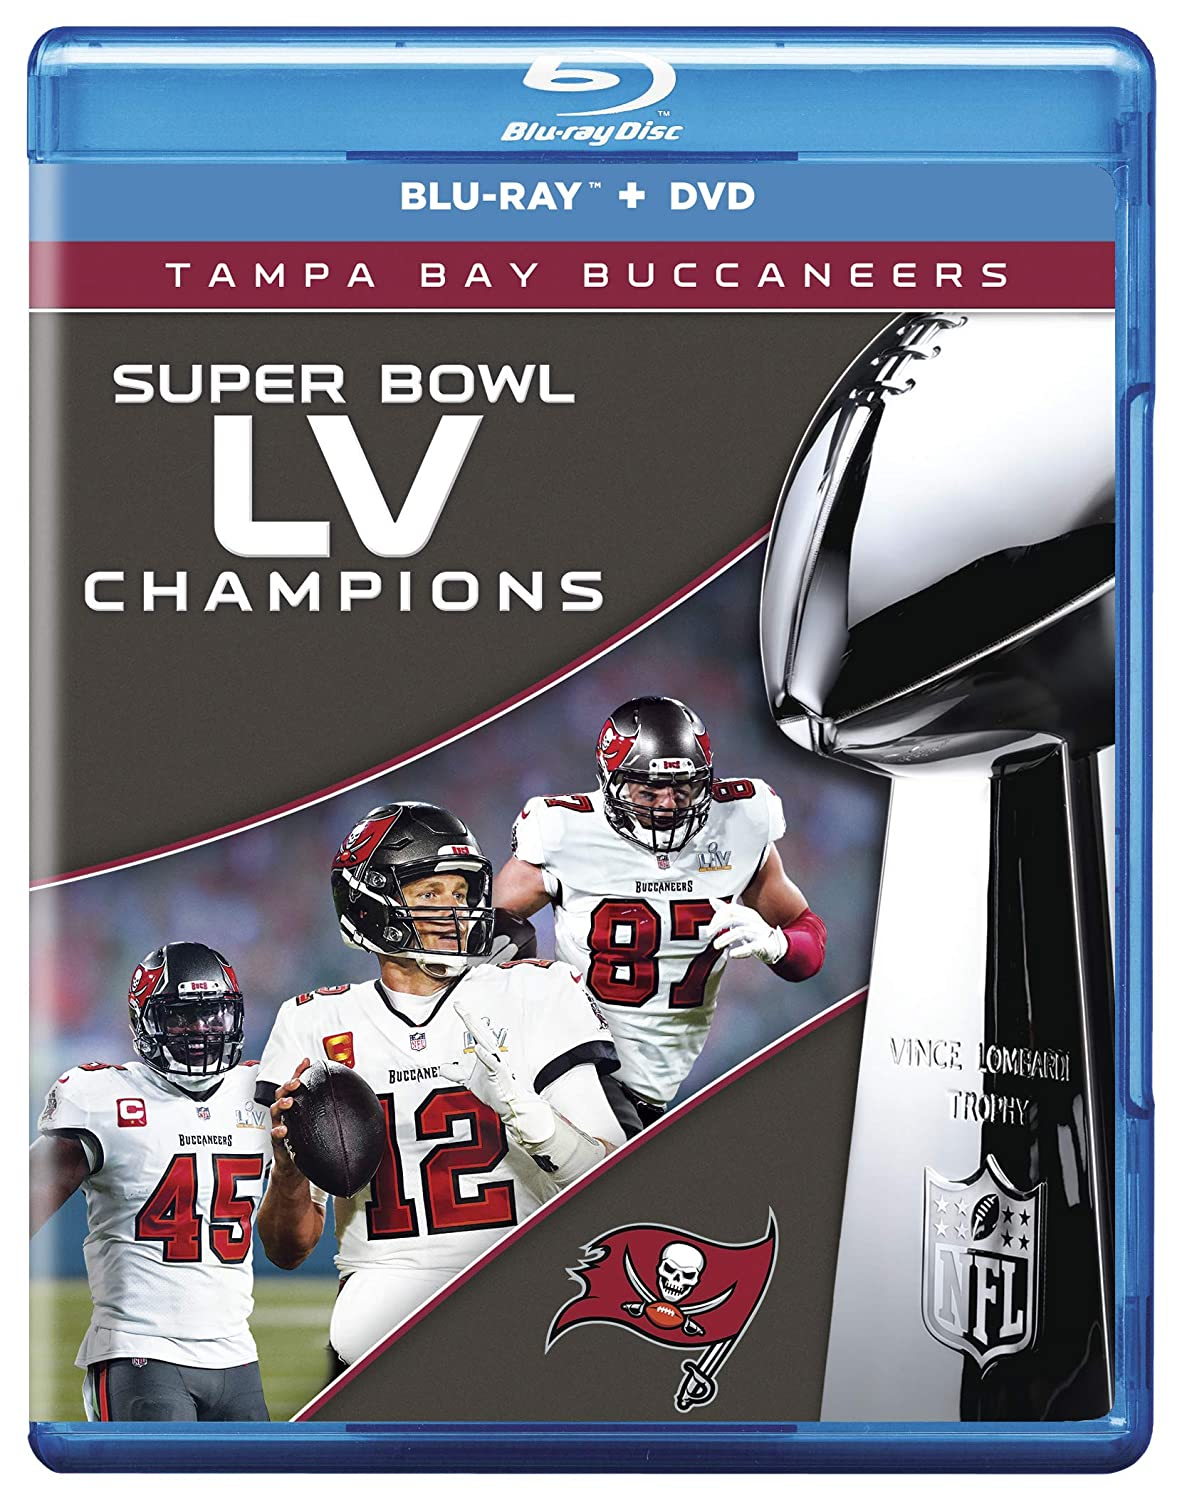 Bombing new work NFL Super Bowl Credence LV Champions: Bay Buccaneers Tampa Combo